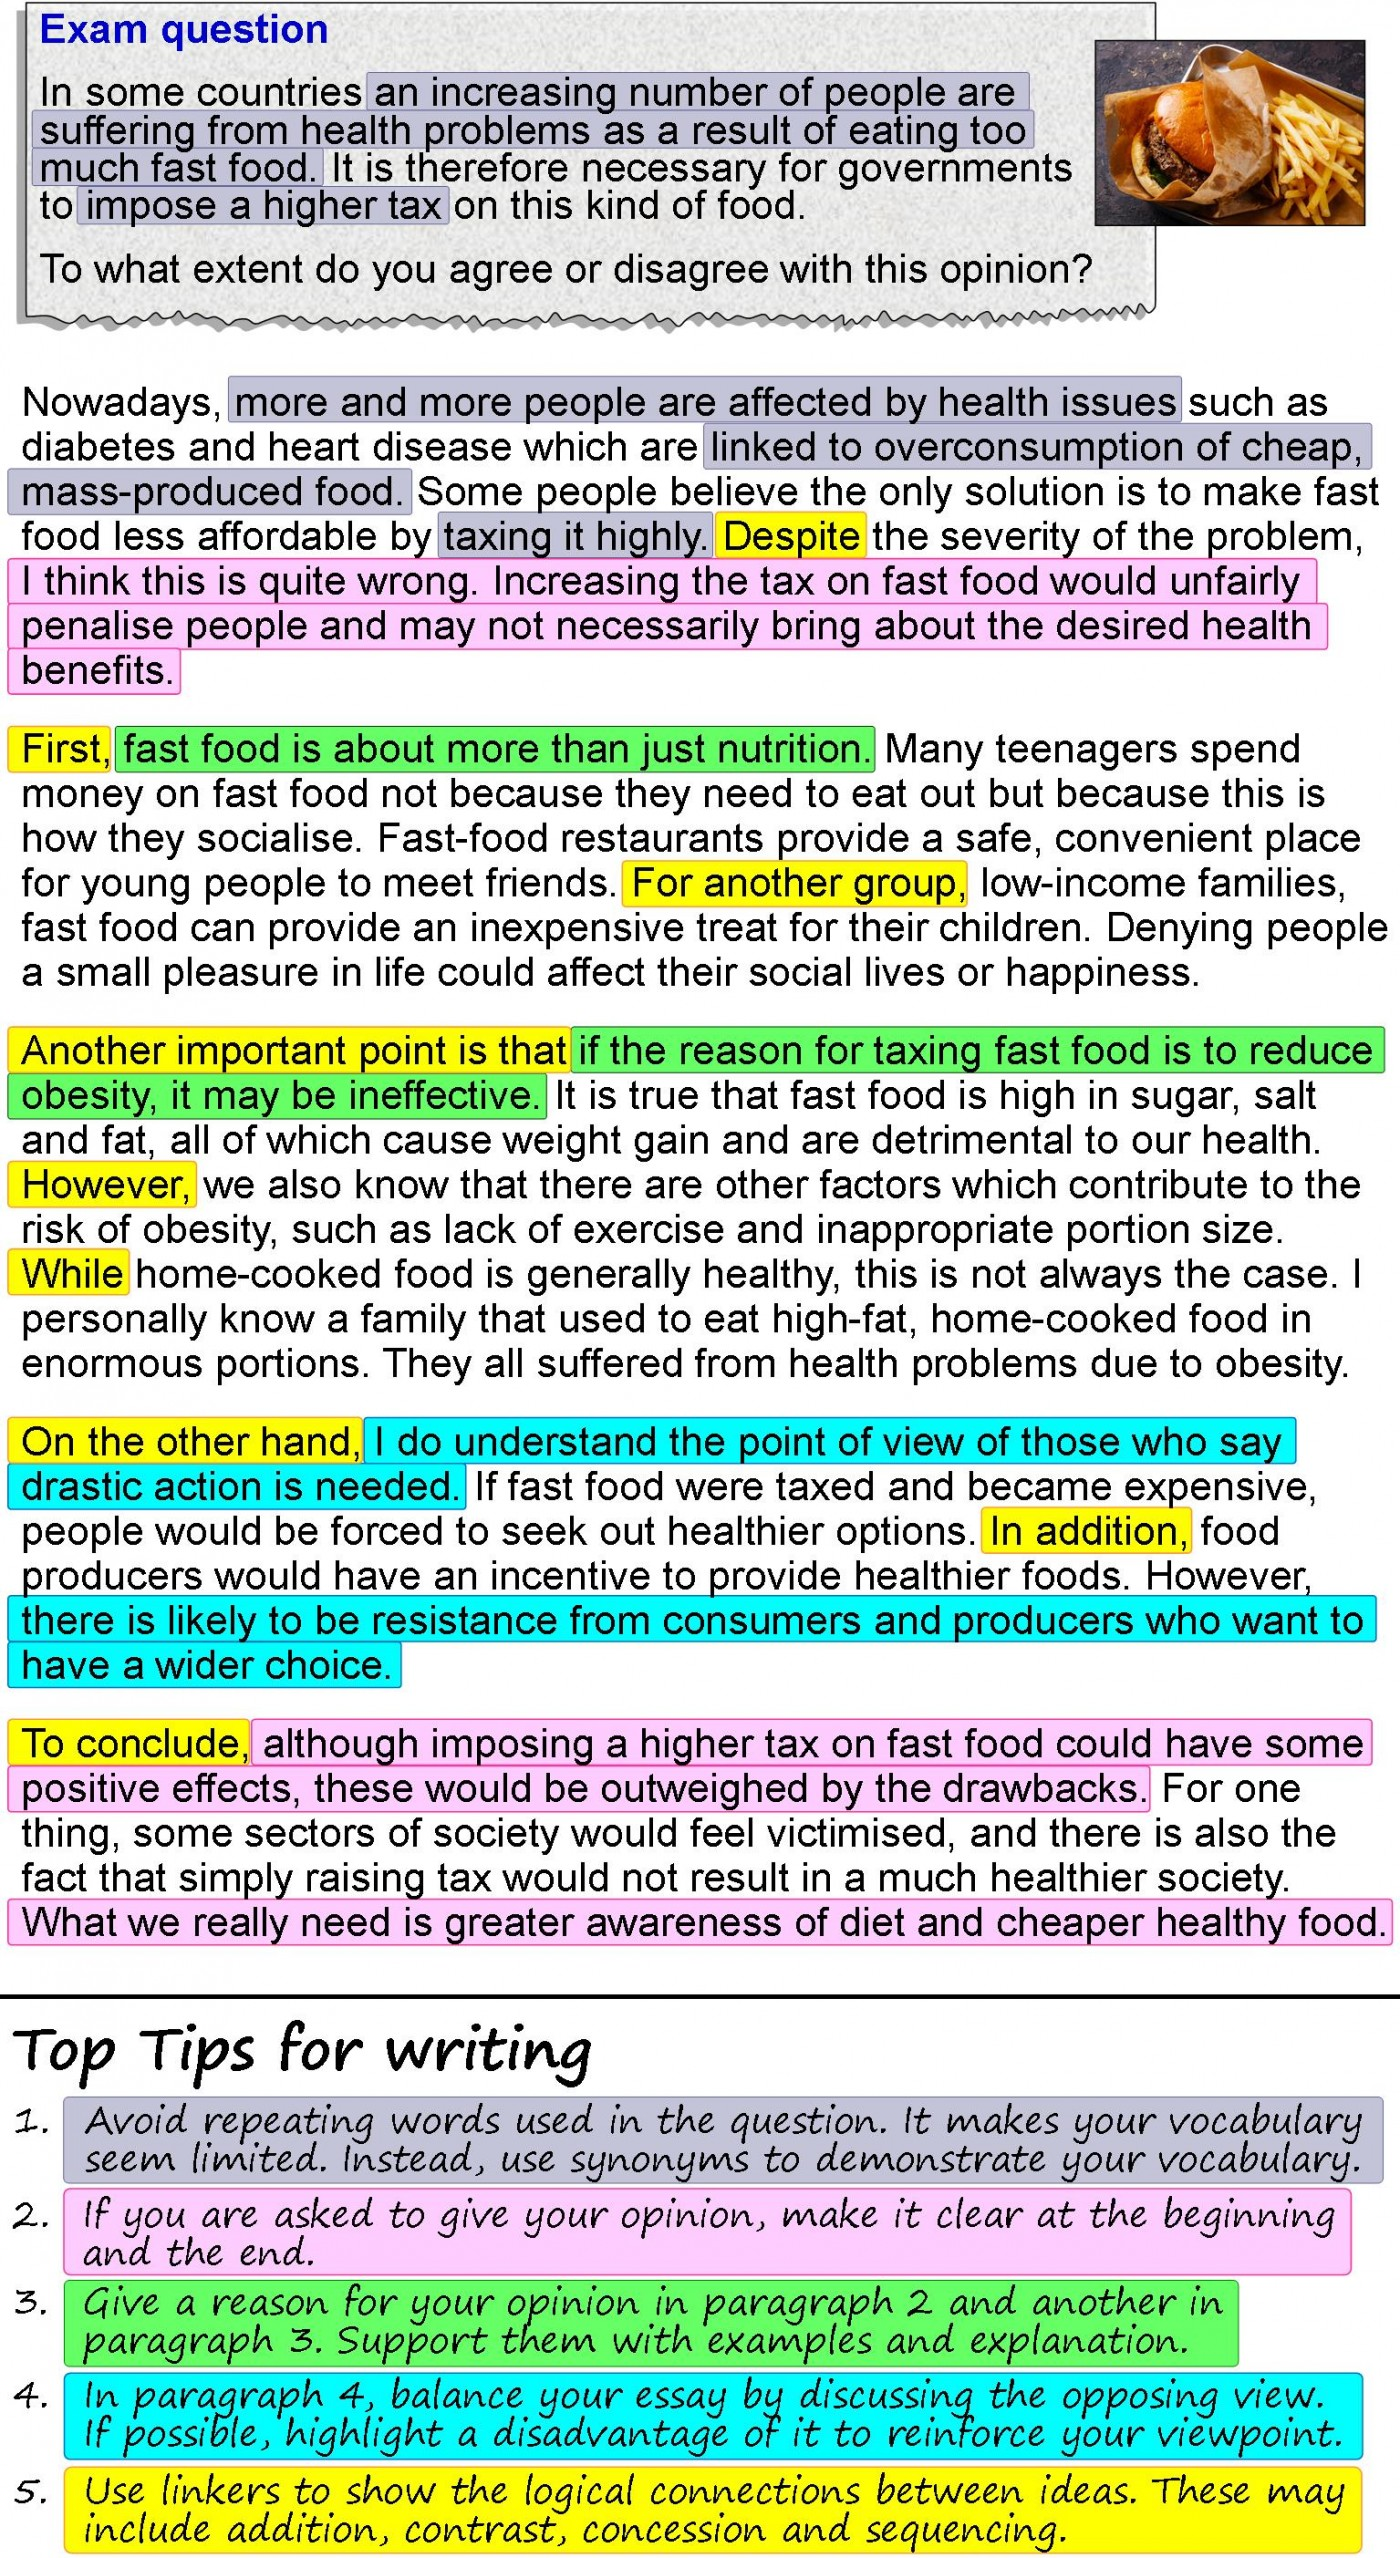 001 Opinion Essay About Fast Food Example An 4 Unbelievable Is A Good Alternative To Cooking For Yourself British Council 1400